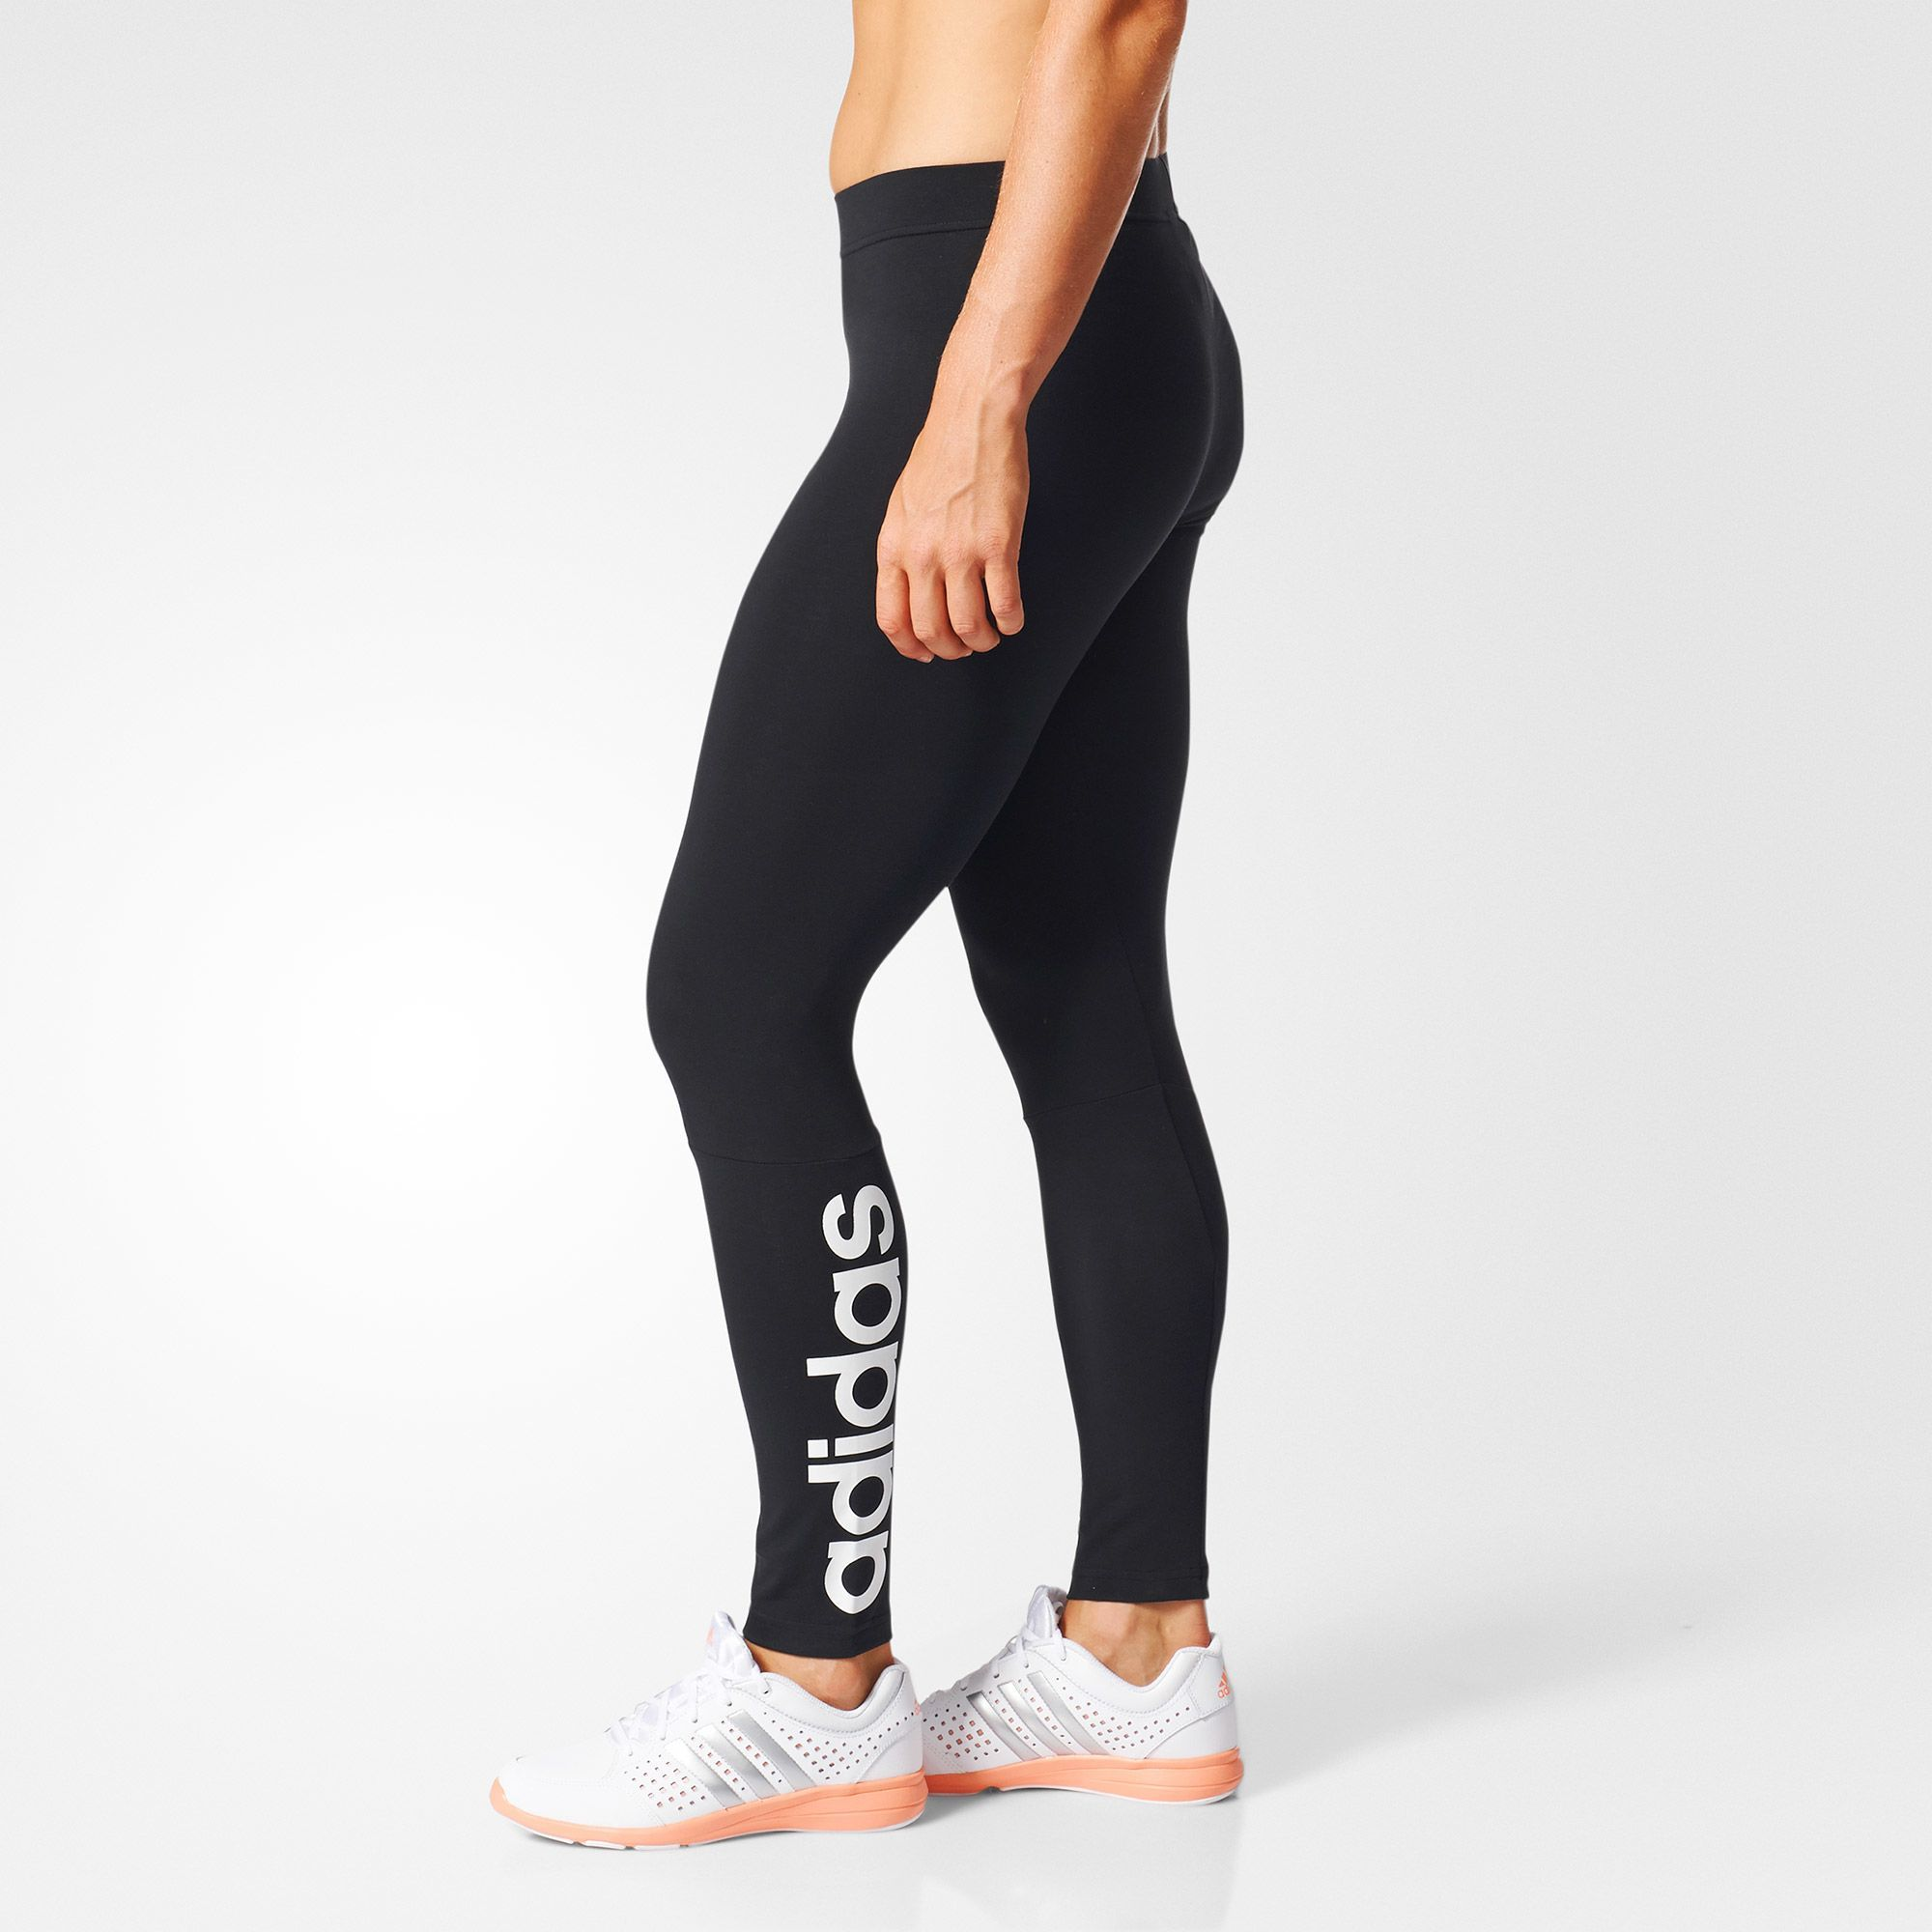 Find women's athletic apparel from adidas on the official online store.